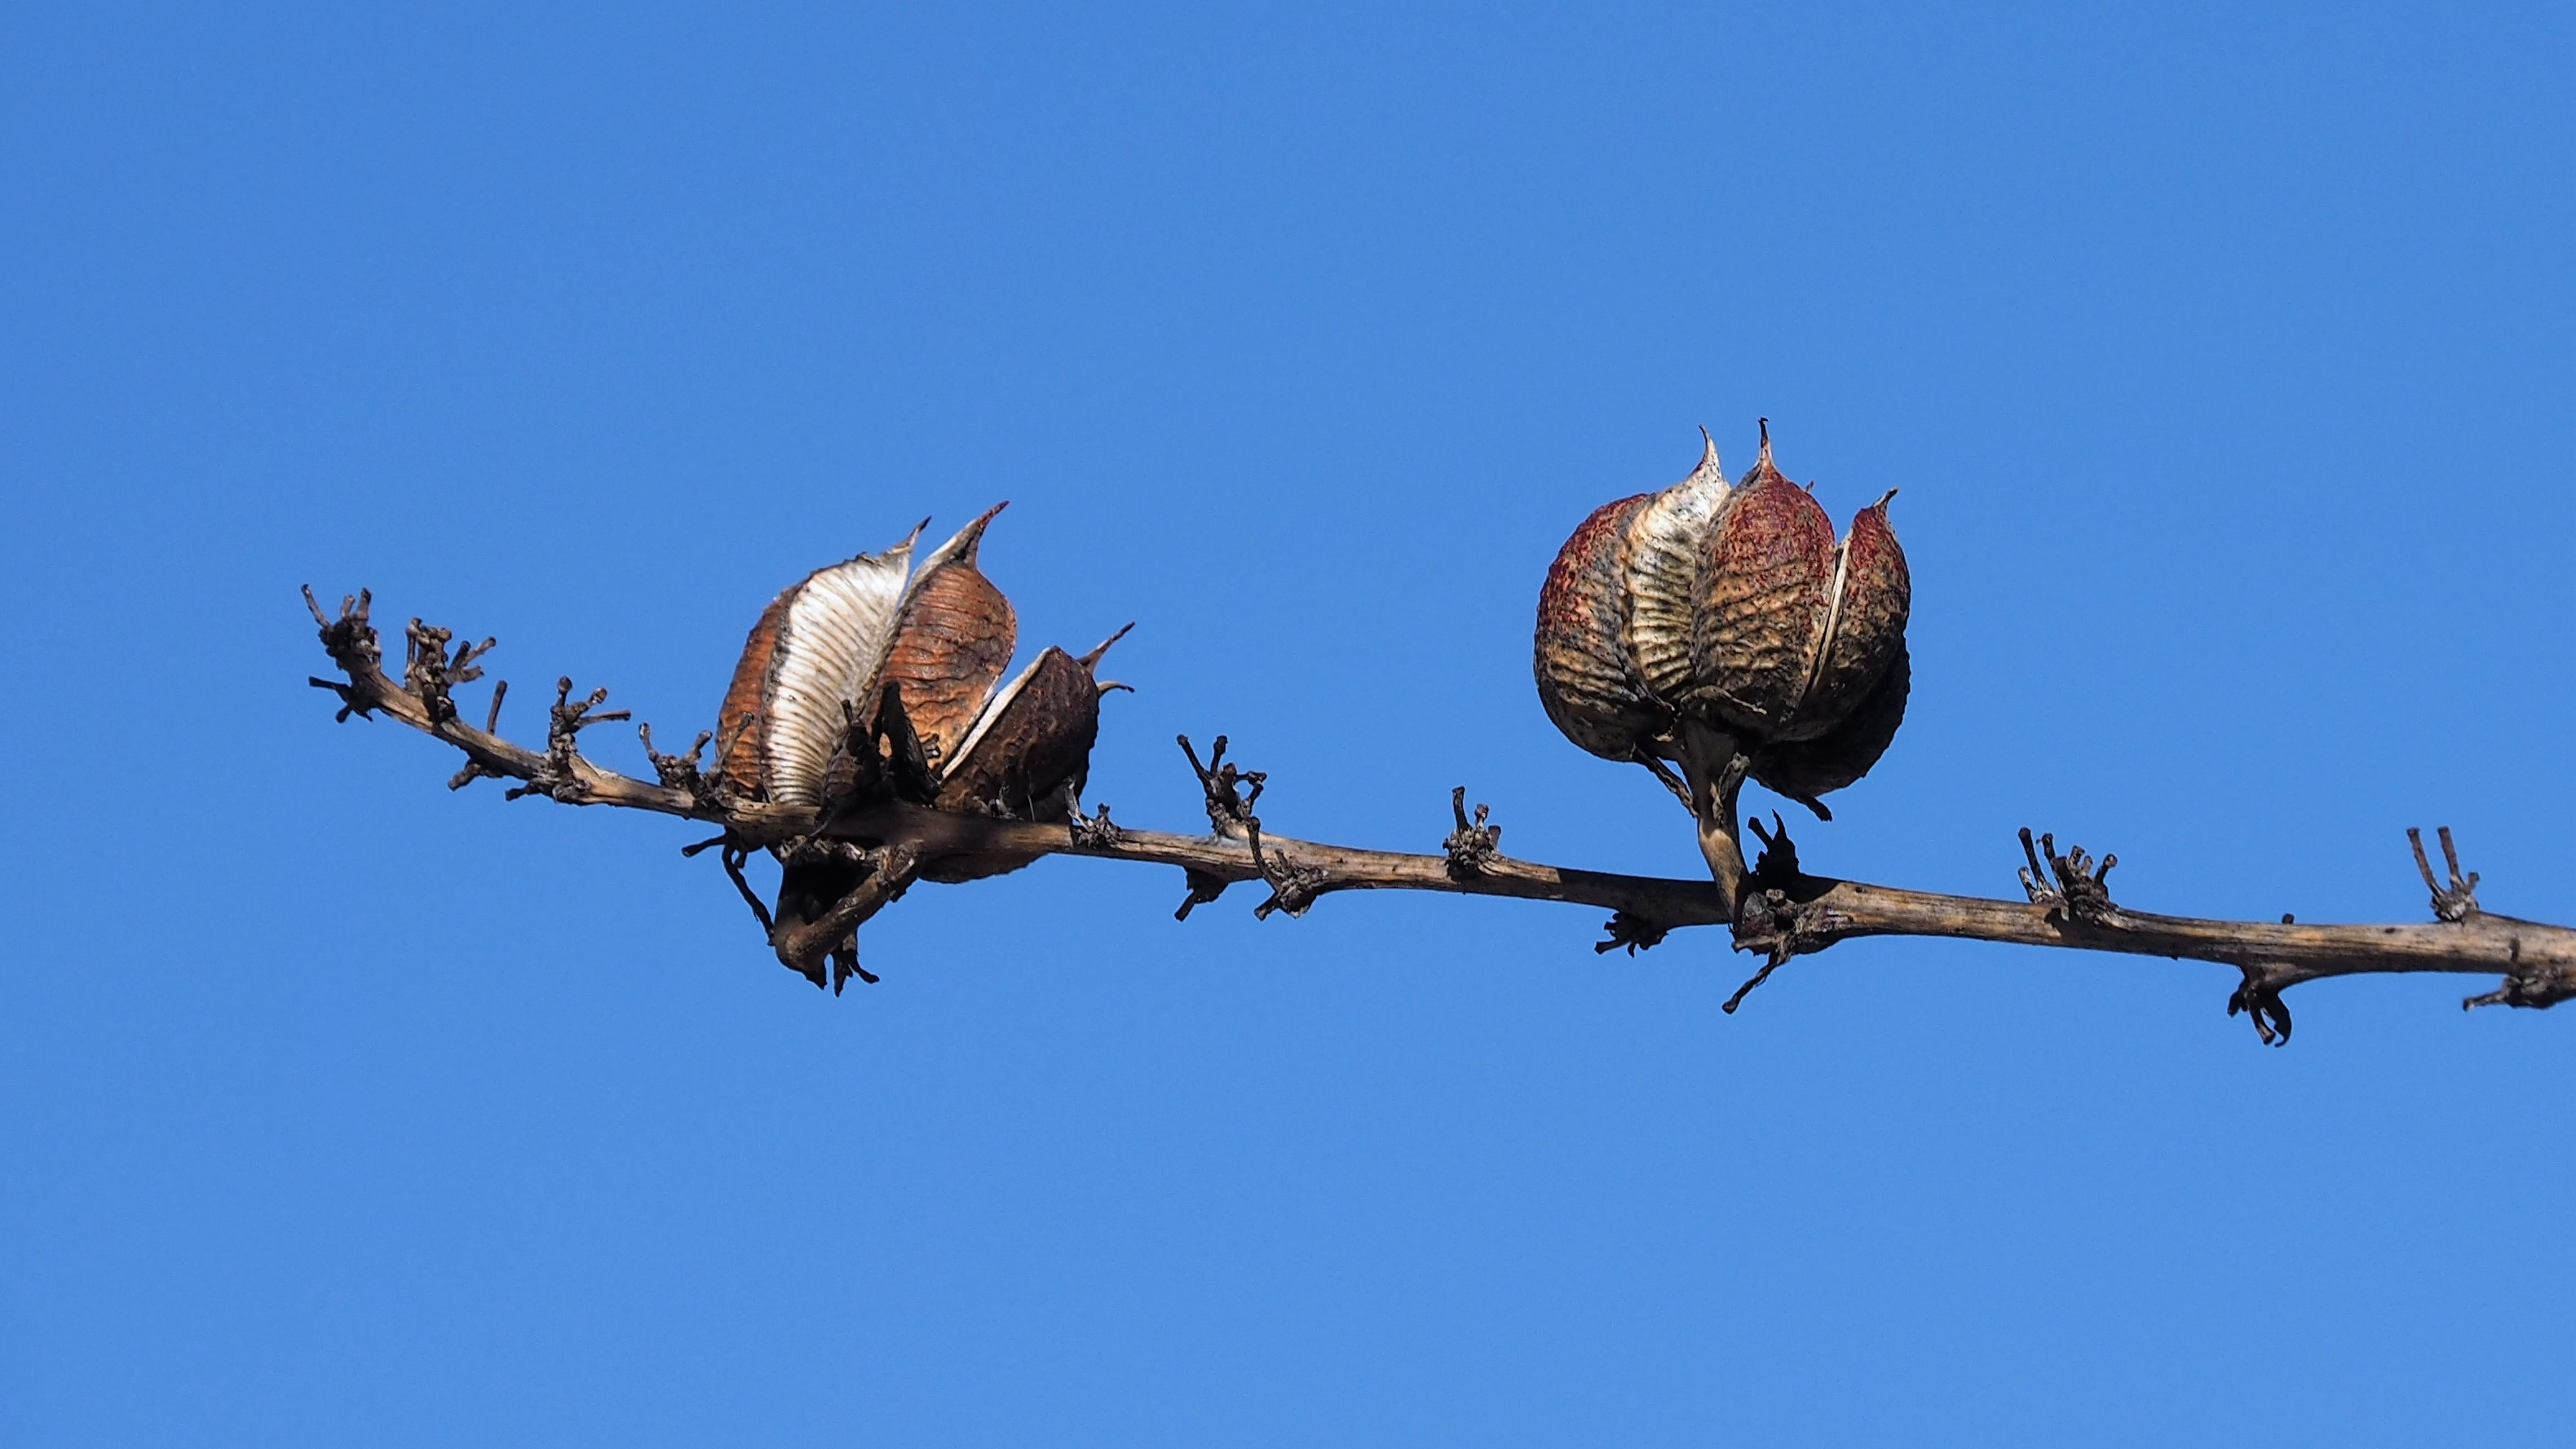 Two dried seed pods against deep-blue sky.